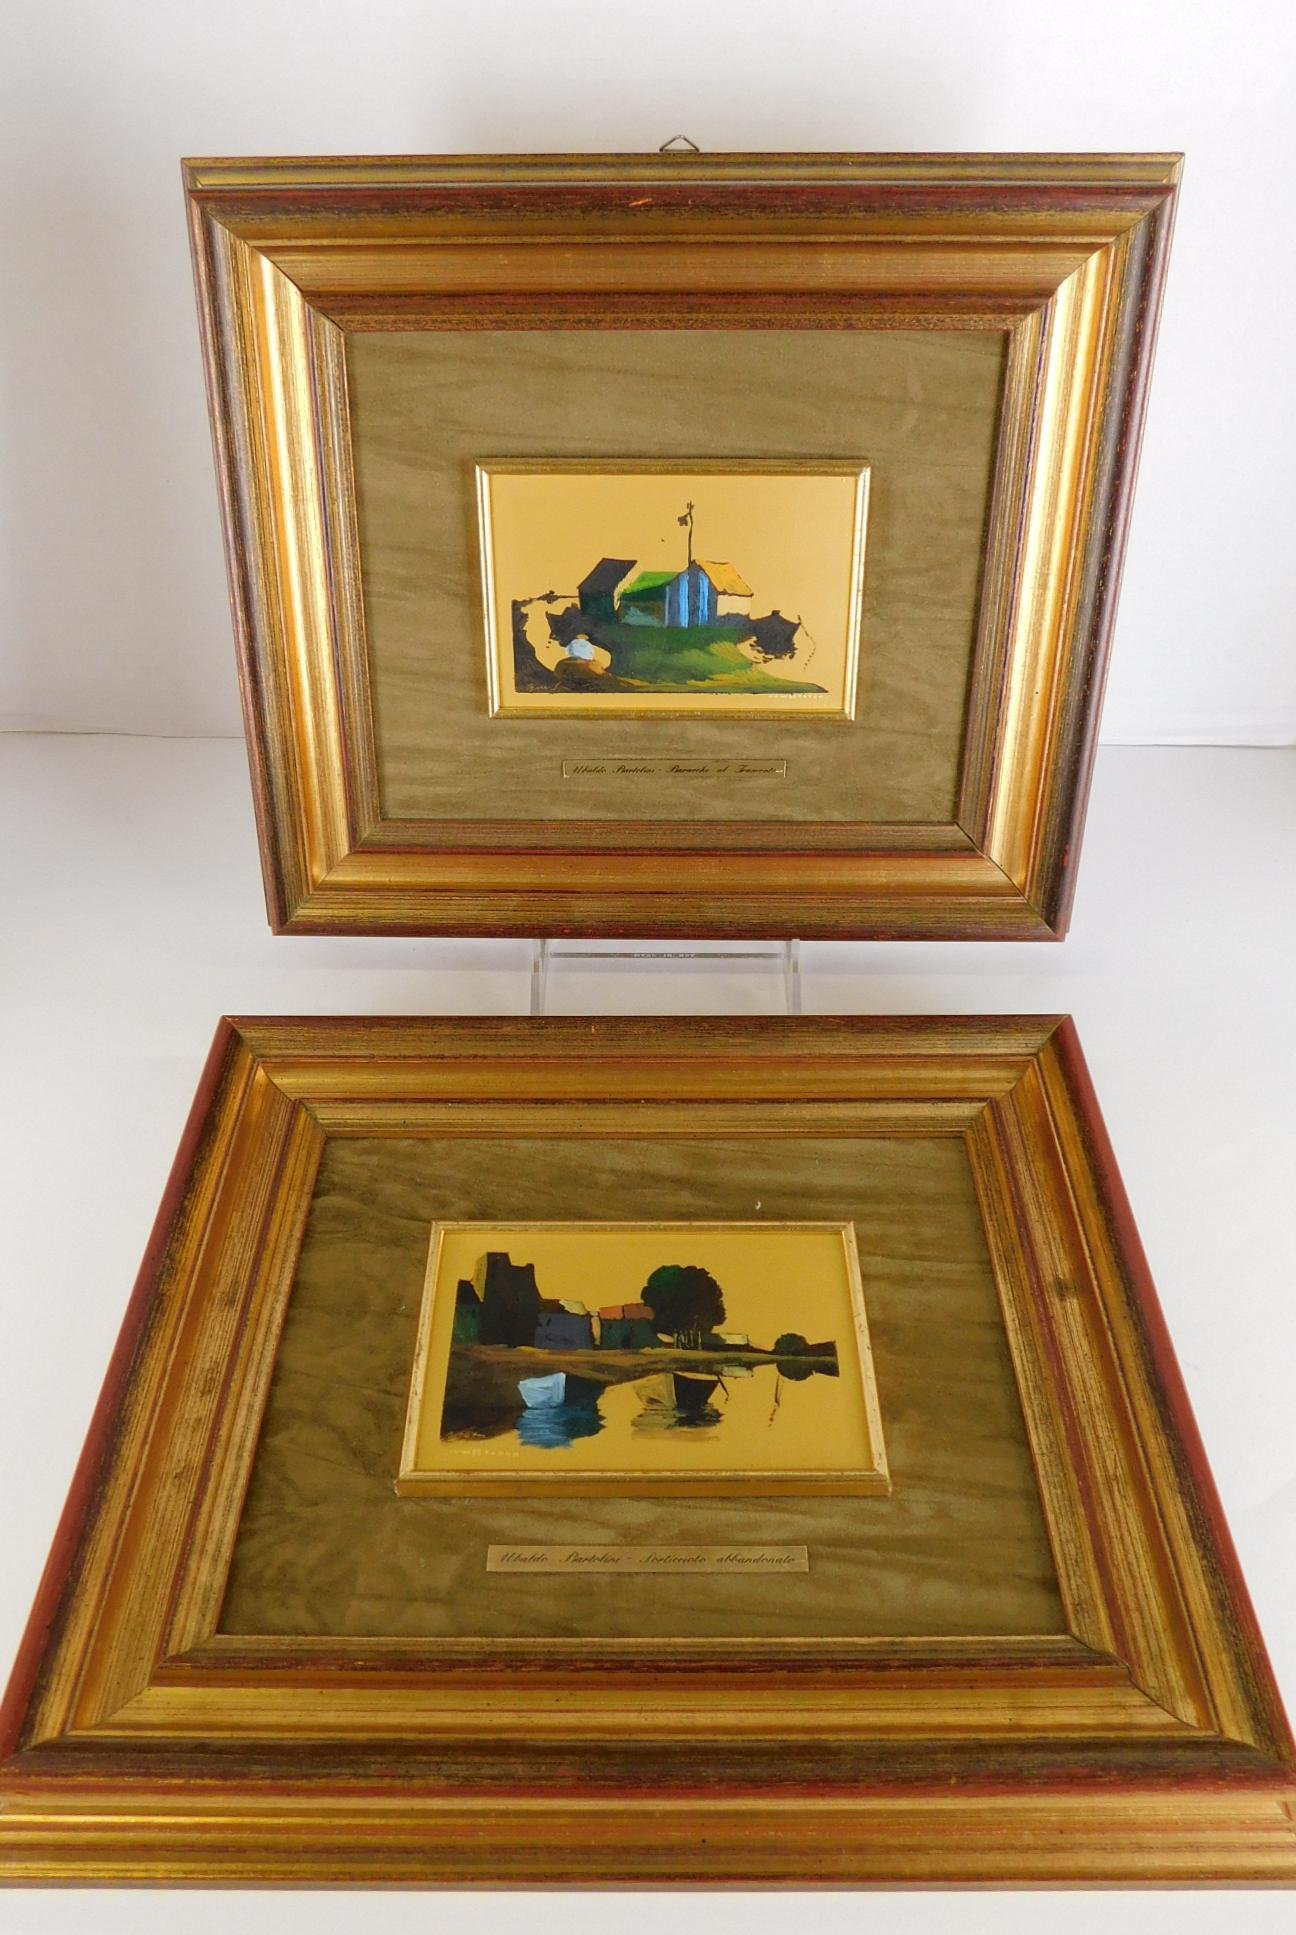 G. CAMILLETTI LIMITED EDITION PAINTINGS